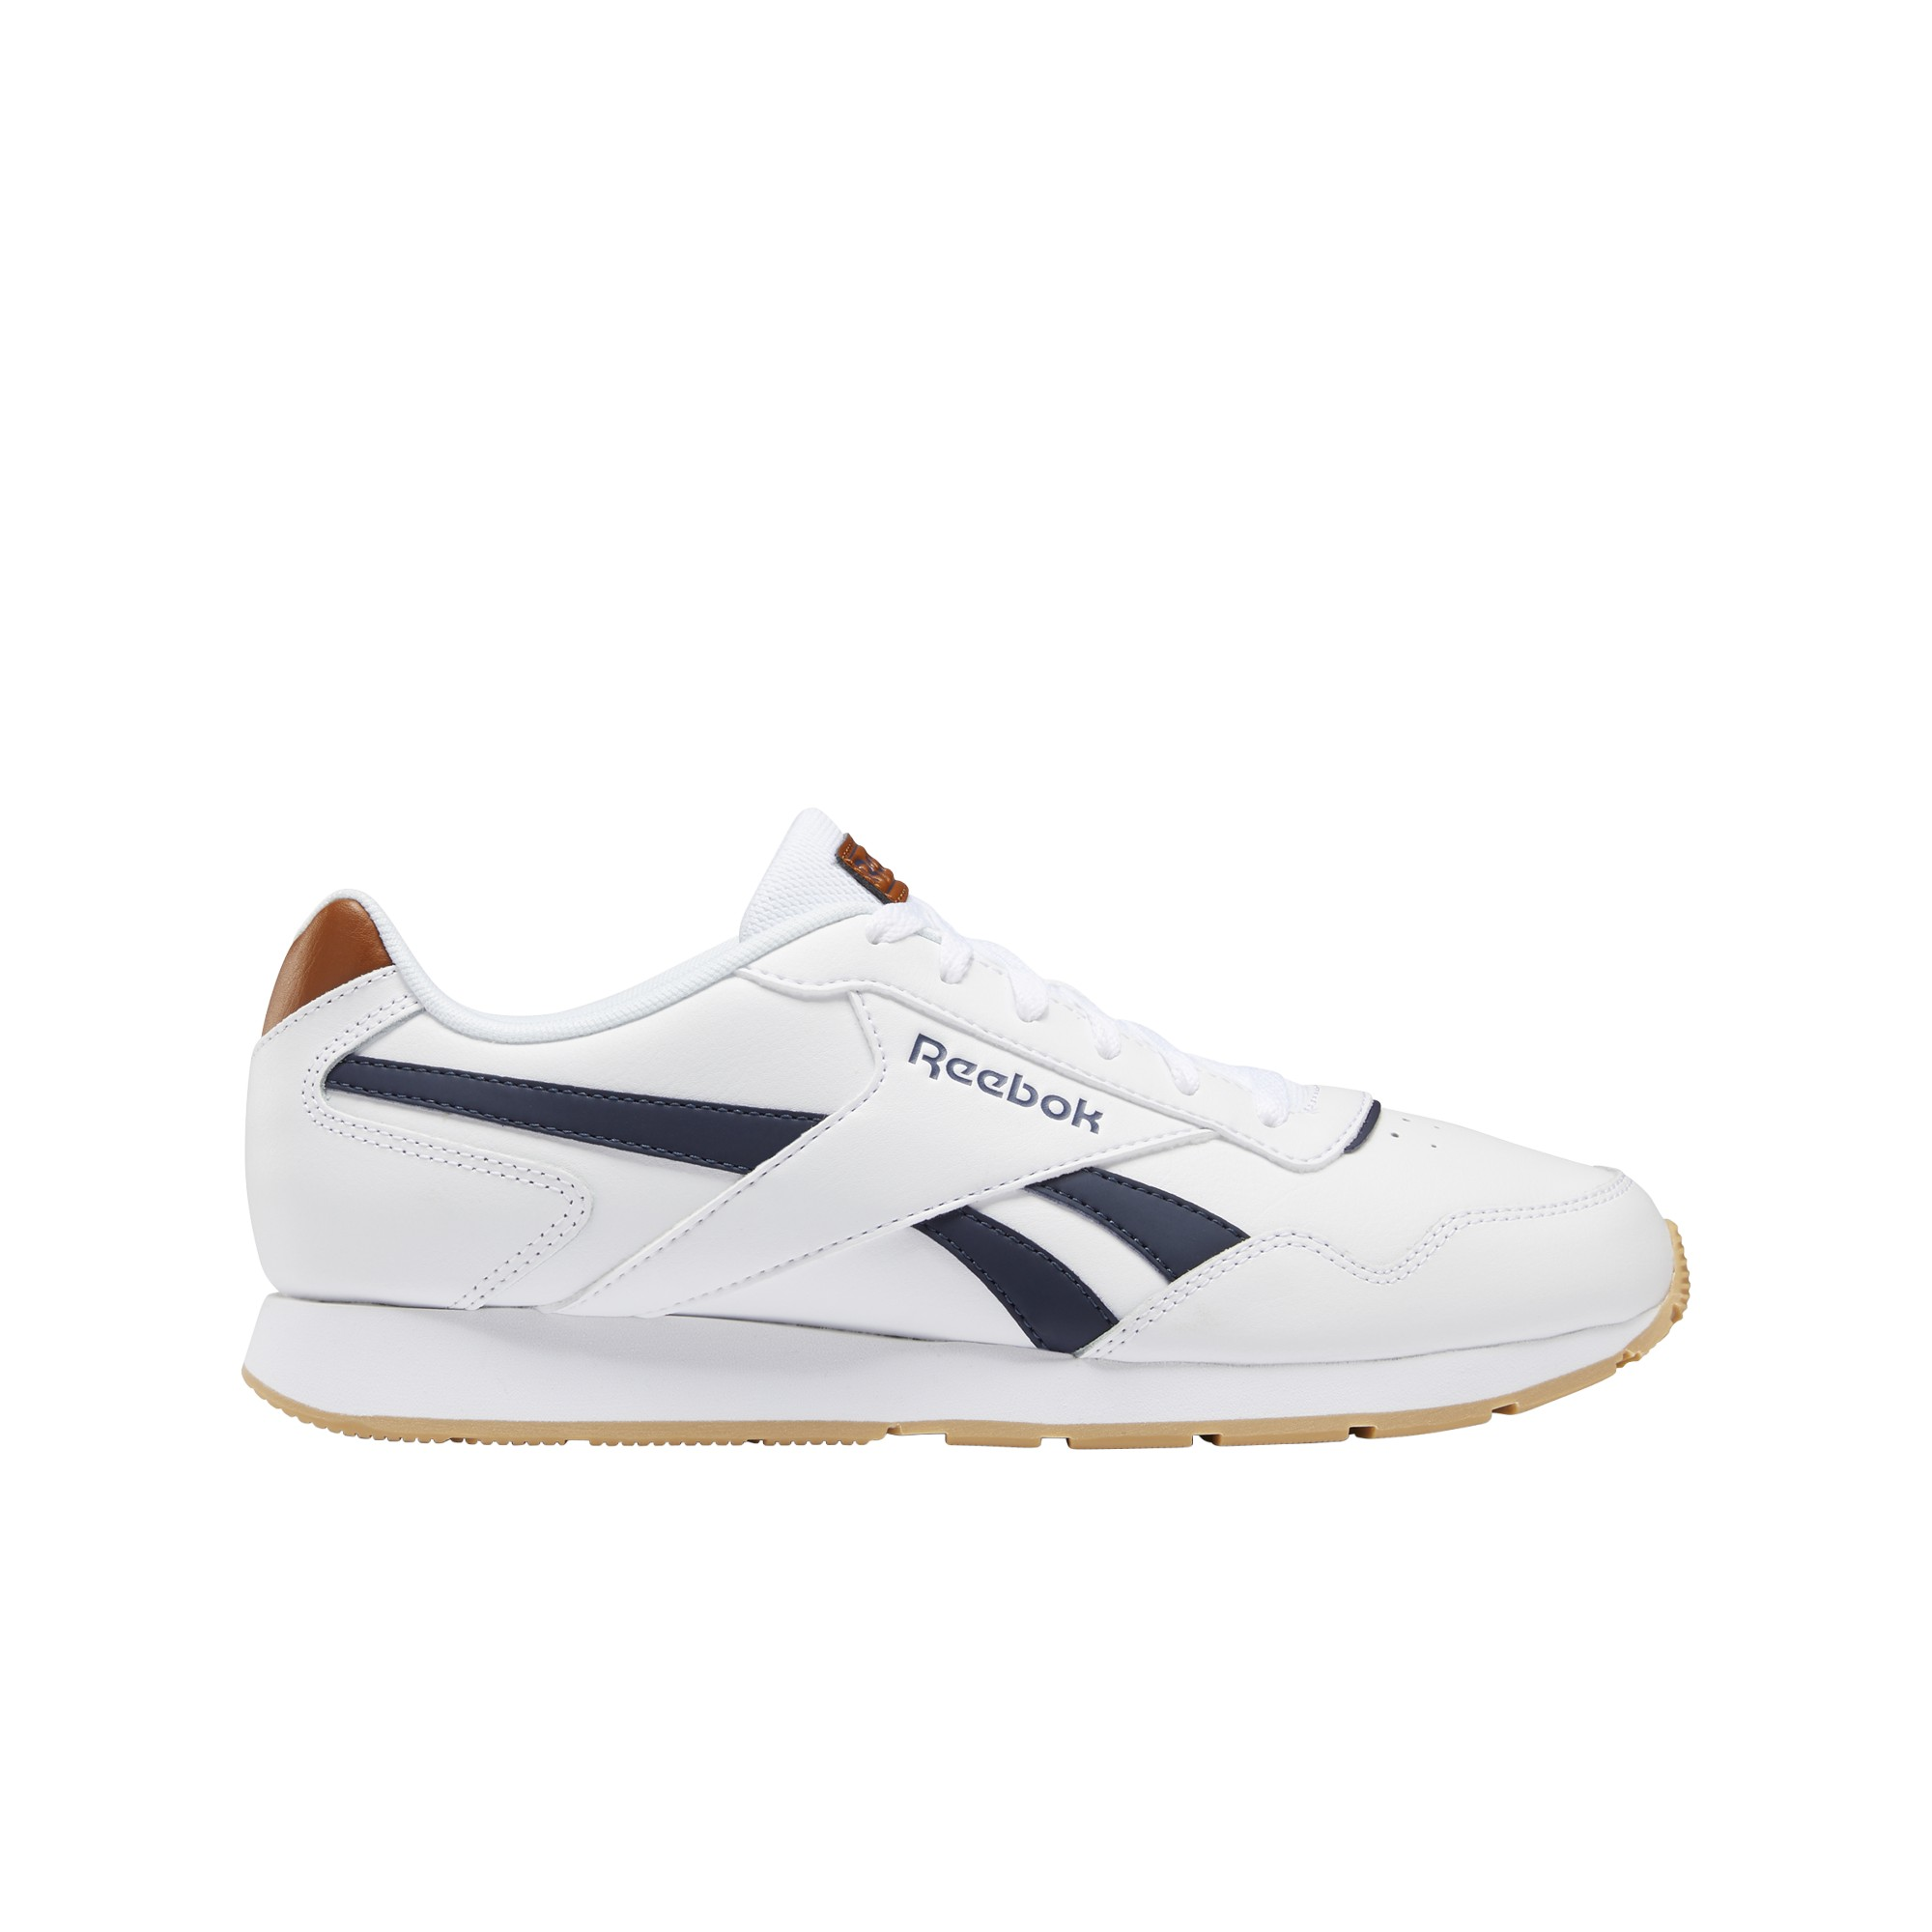 Zapatillas Reebok Royal Dashonic Blanco Reebok | Reebok Chile